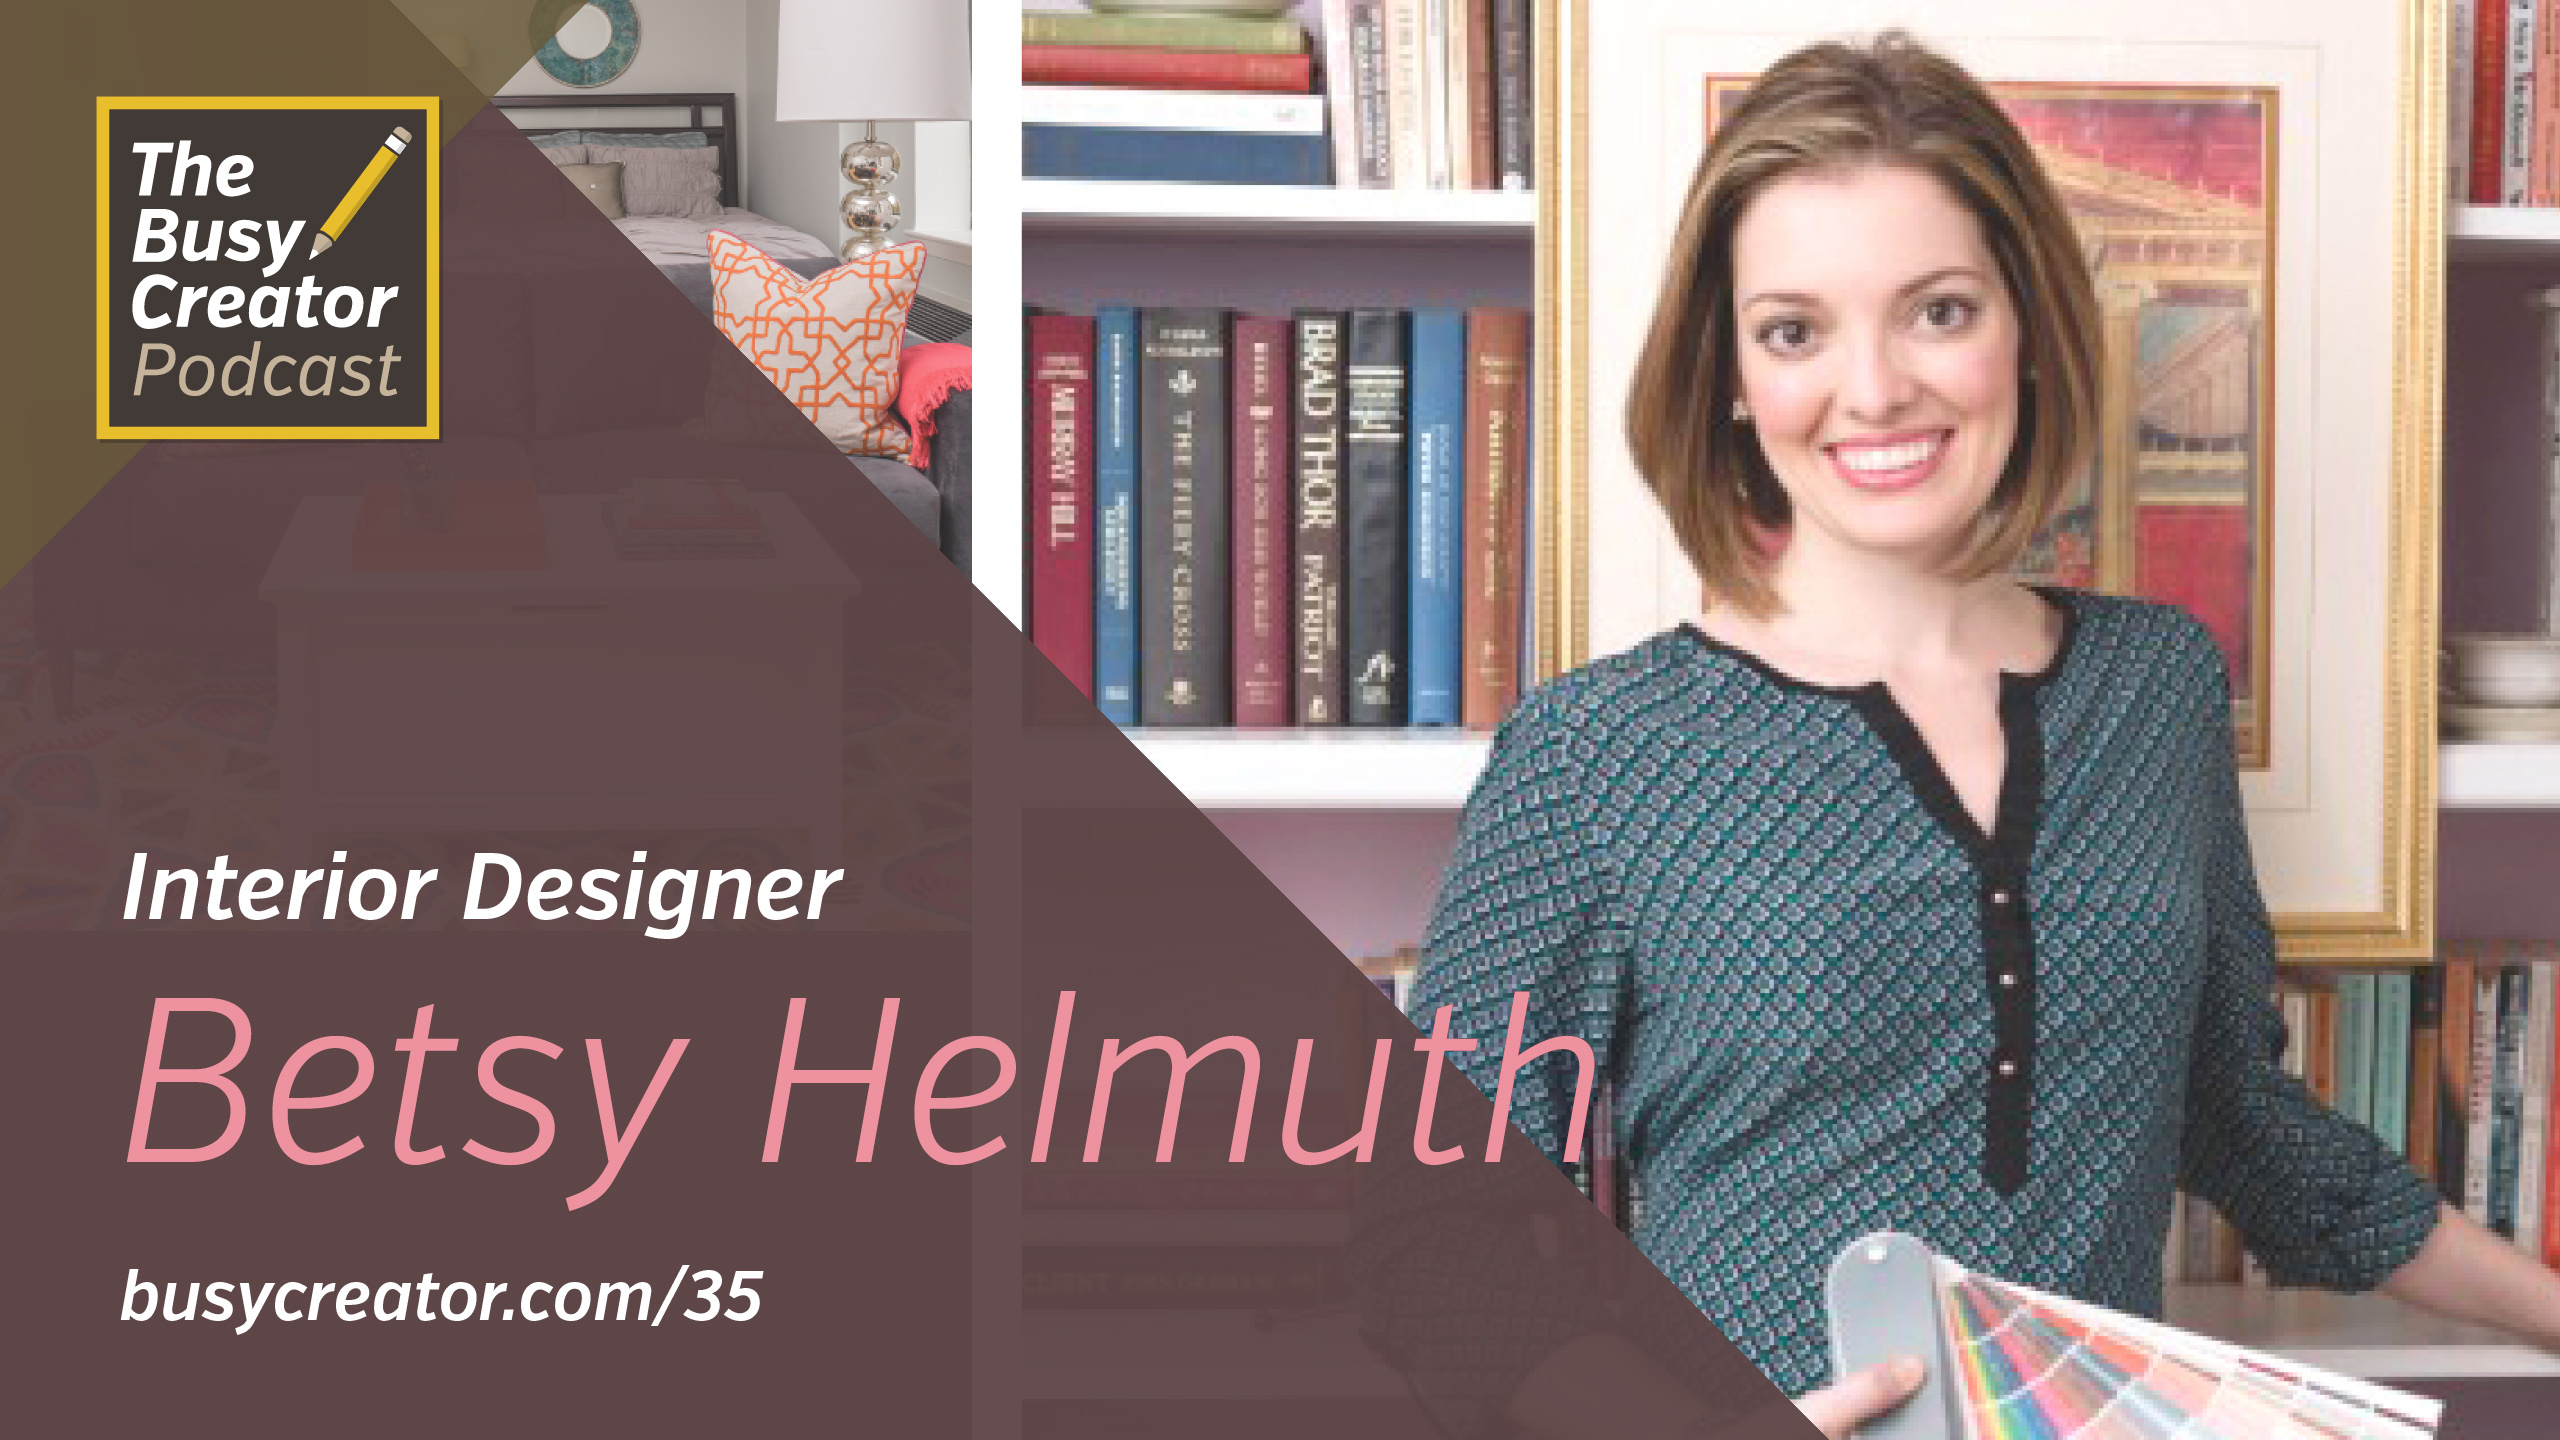 Creating a Nimble Interior Design Practice and Keeping Up With Trends, with Betsy Helmuth